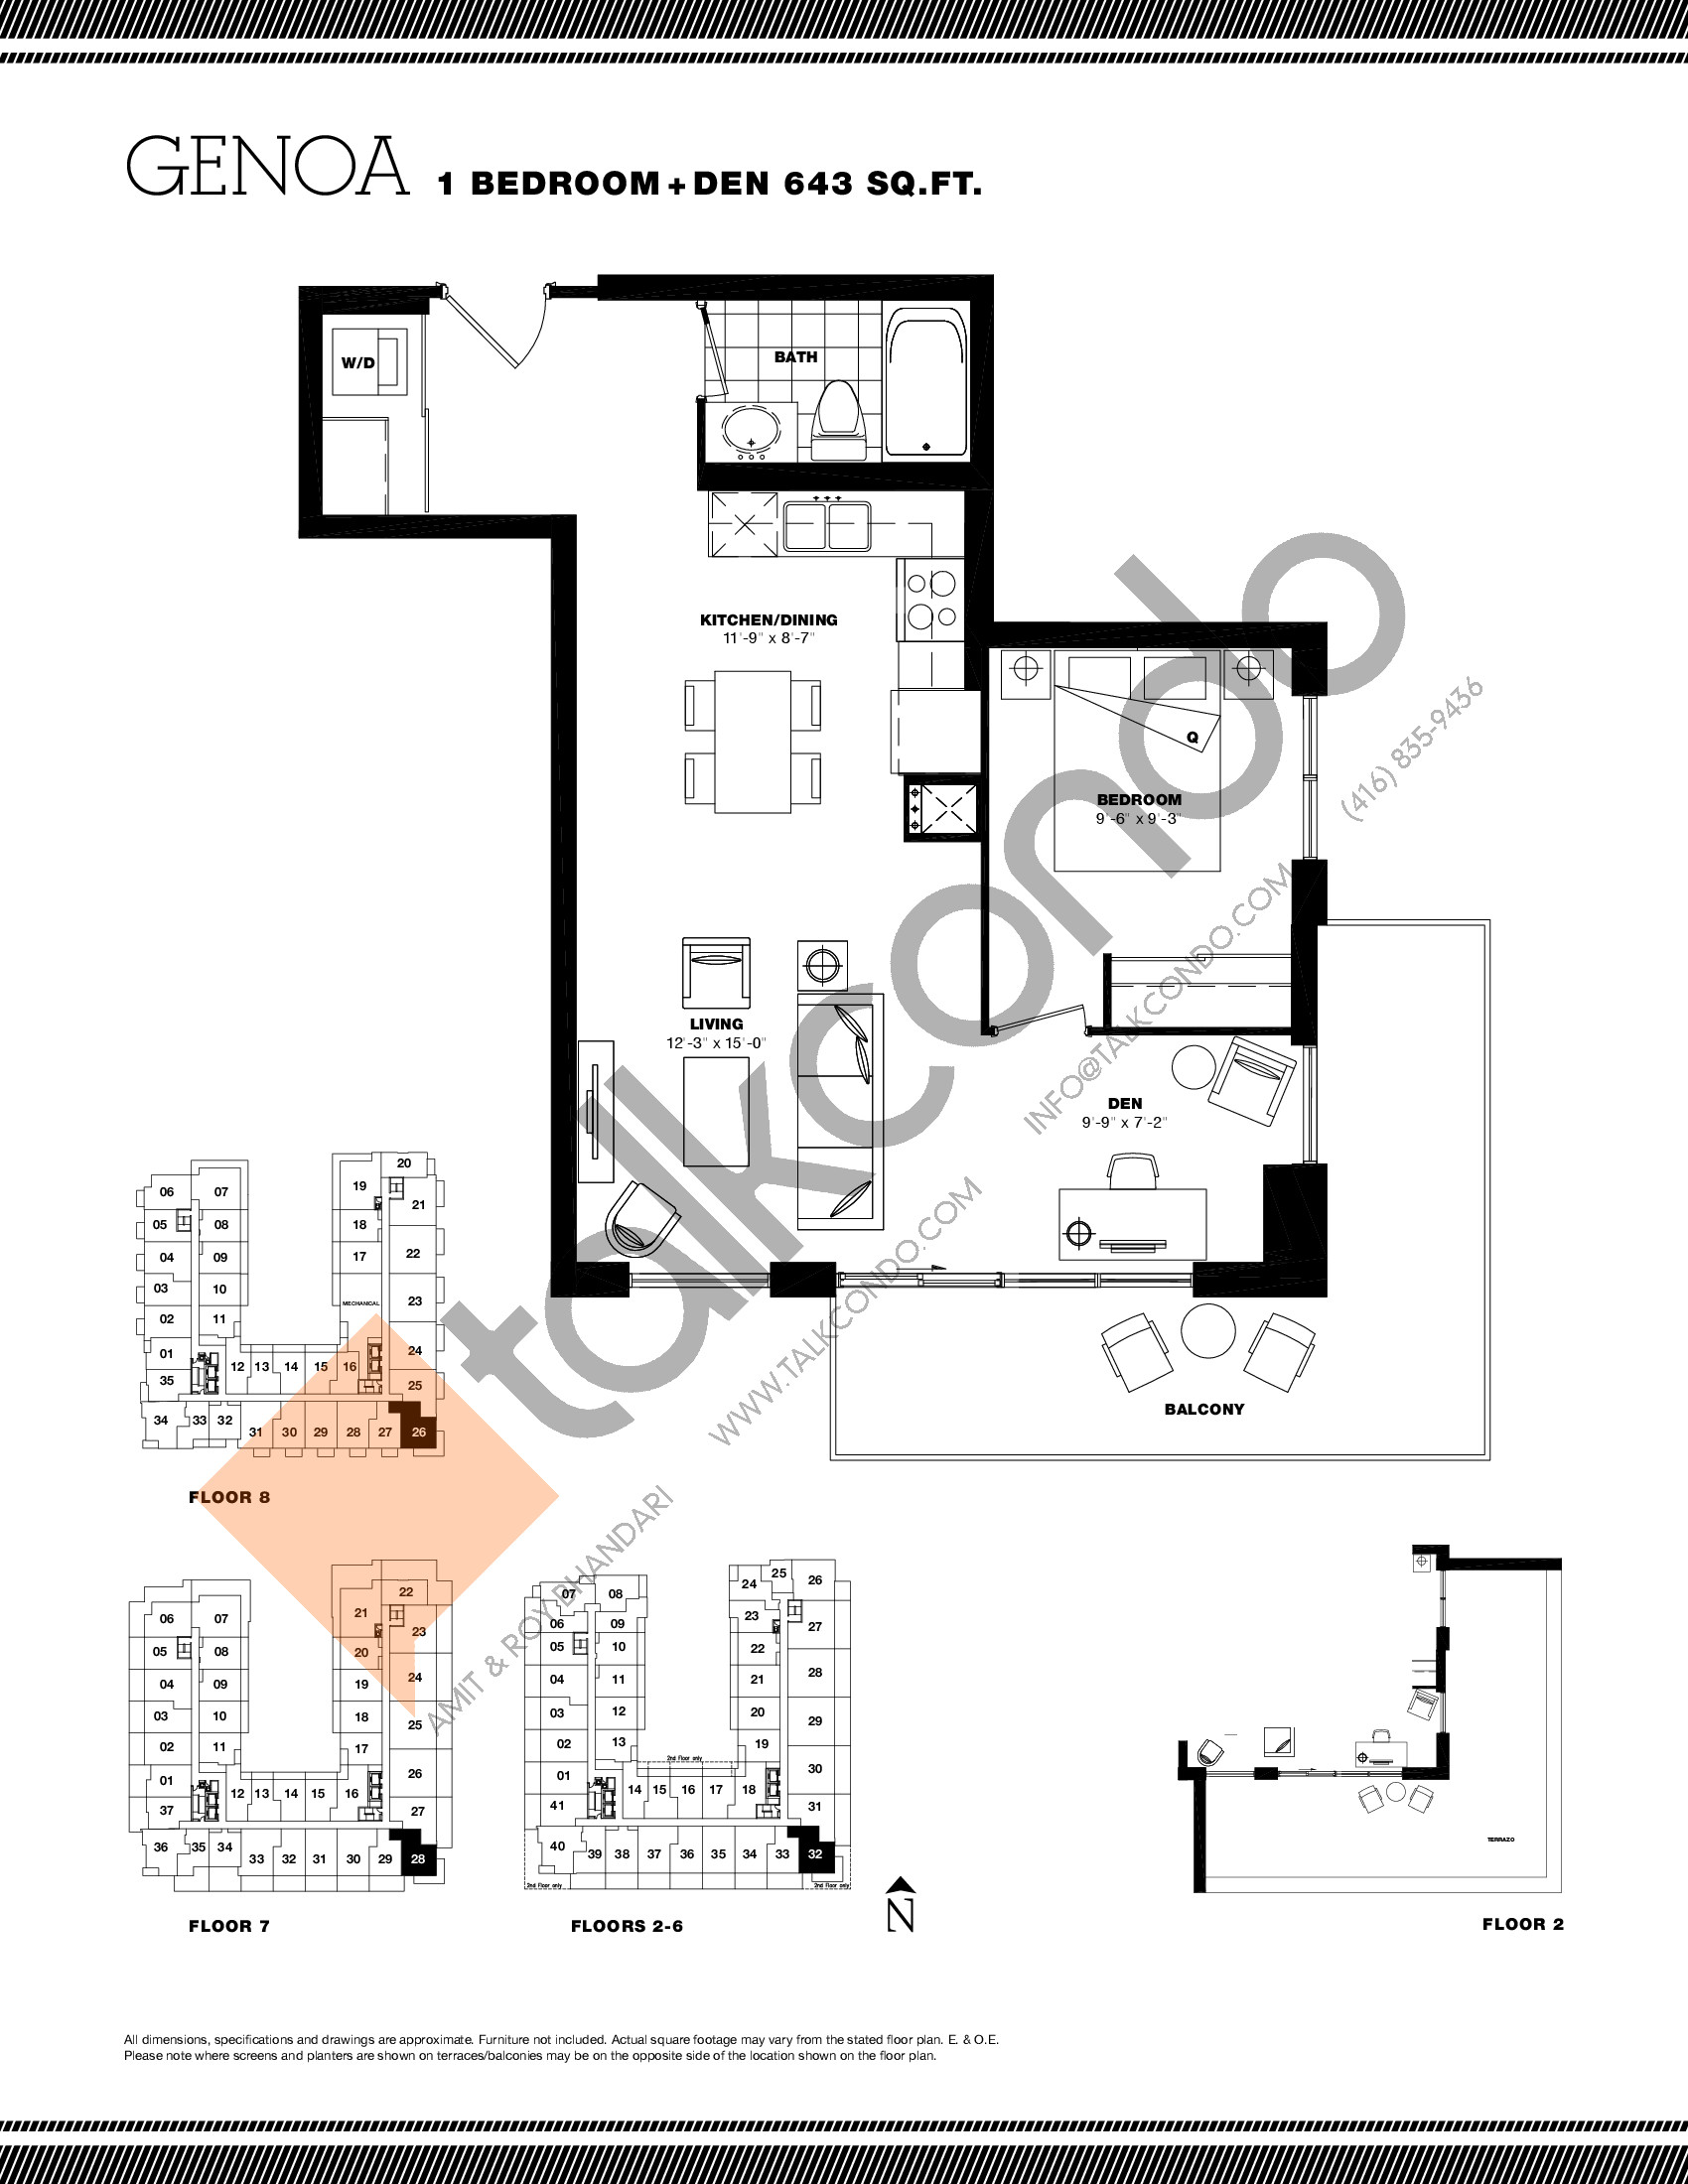 Genoa Floor Plan at Residenze Palazzo at Treviso 3 Condos - 643 sq.ft